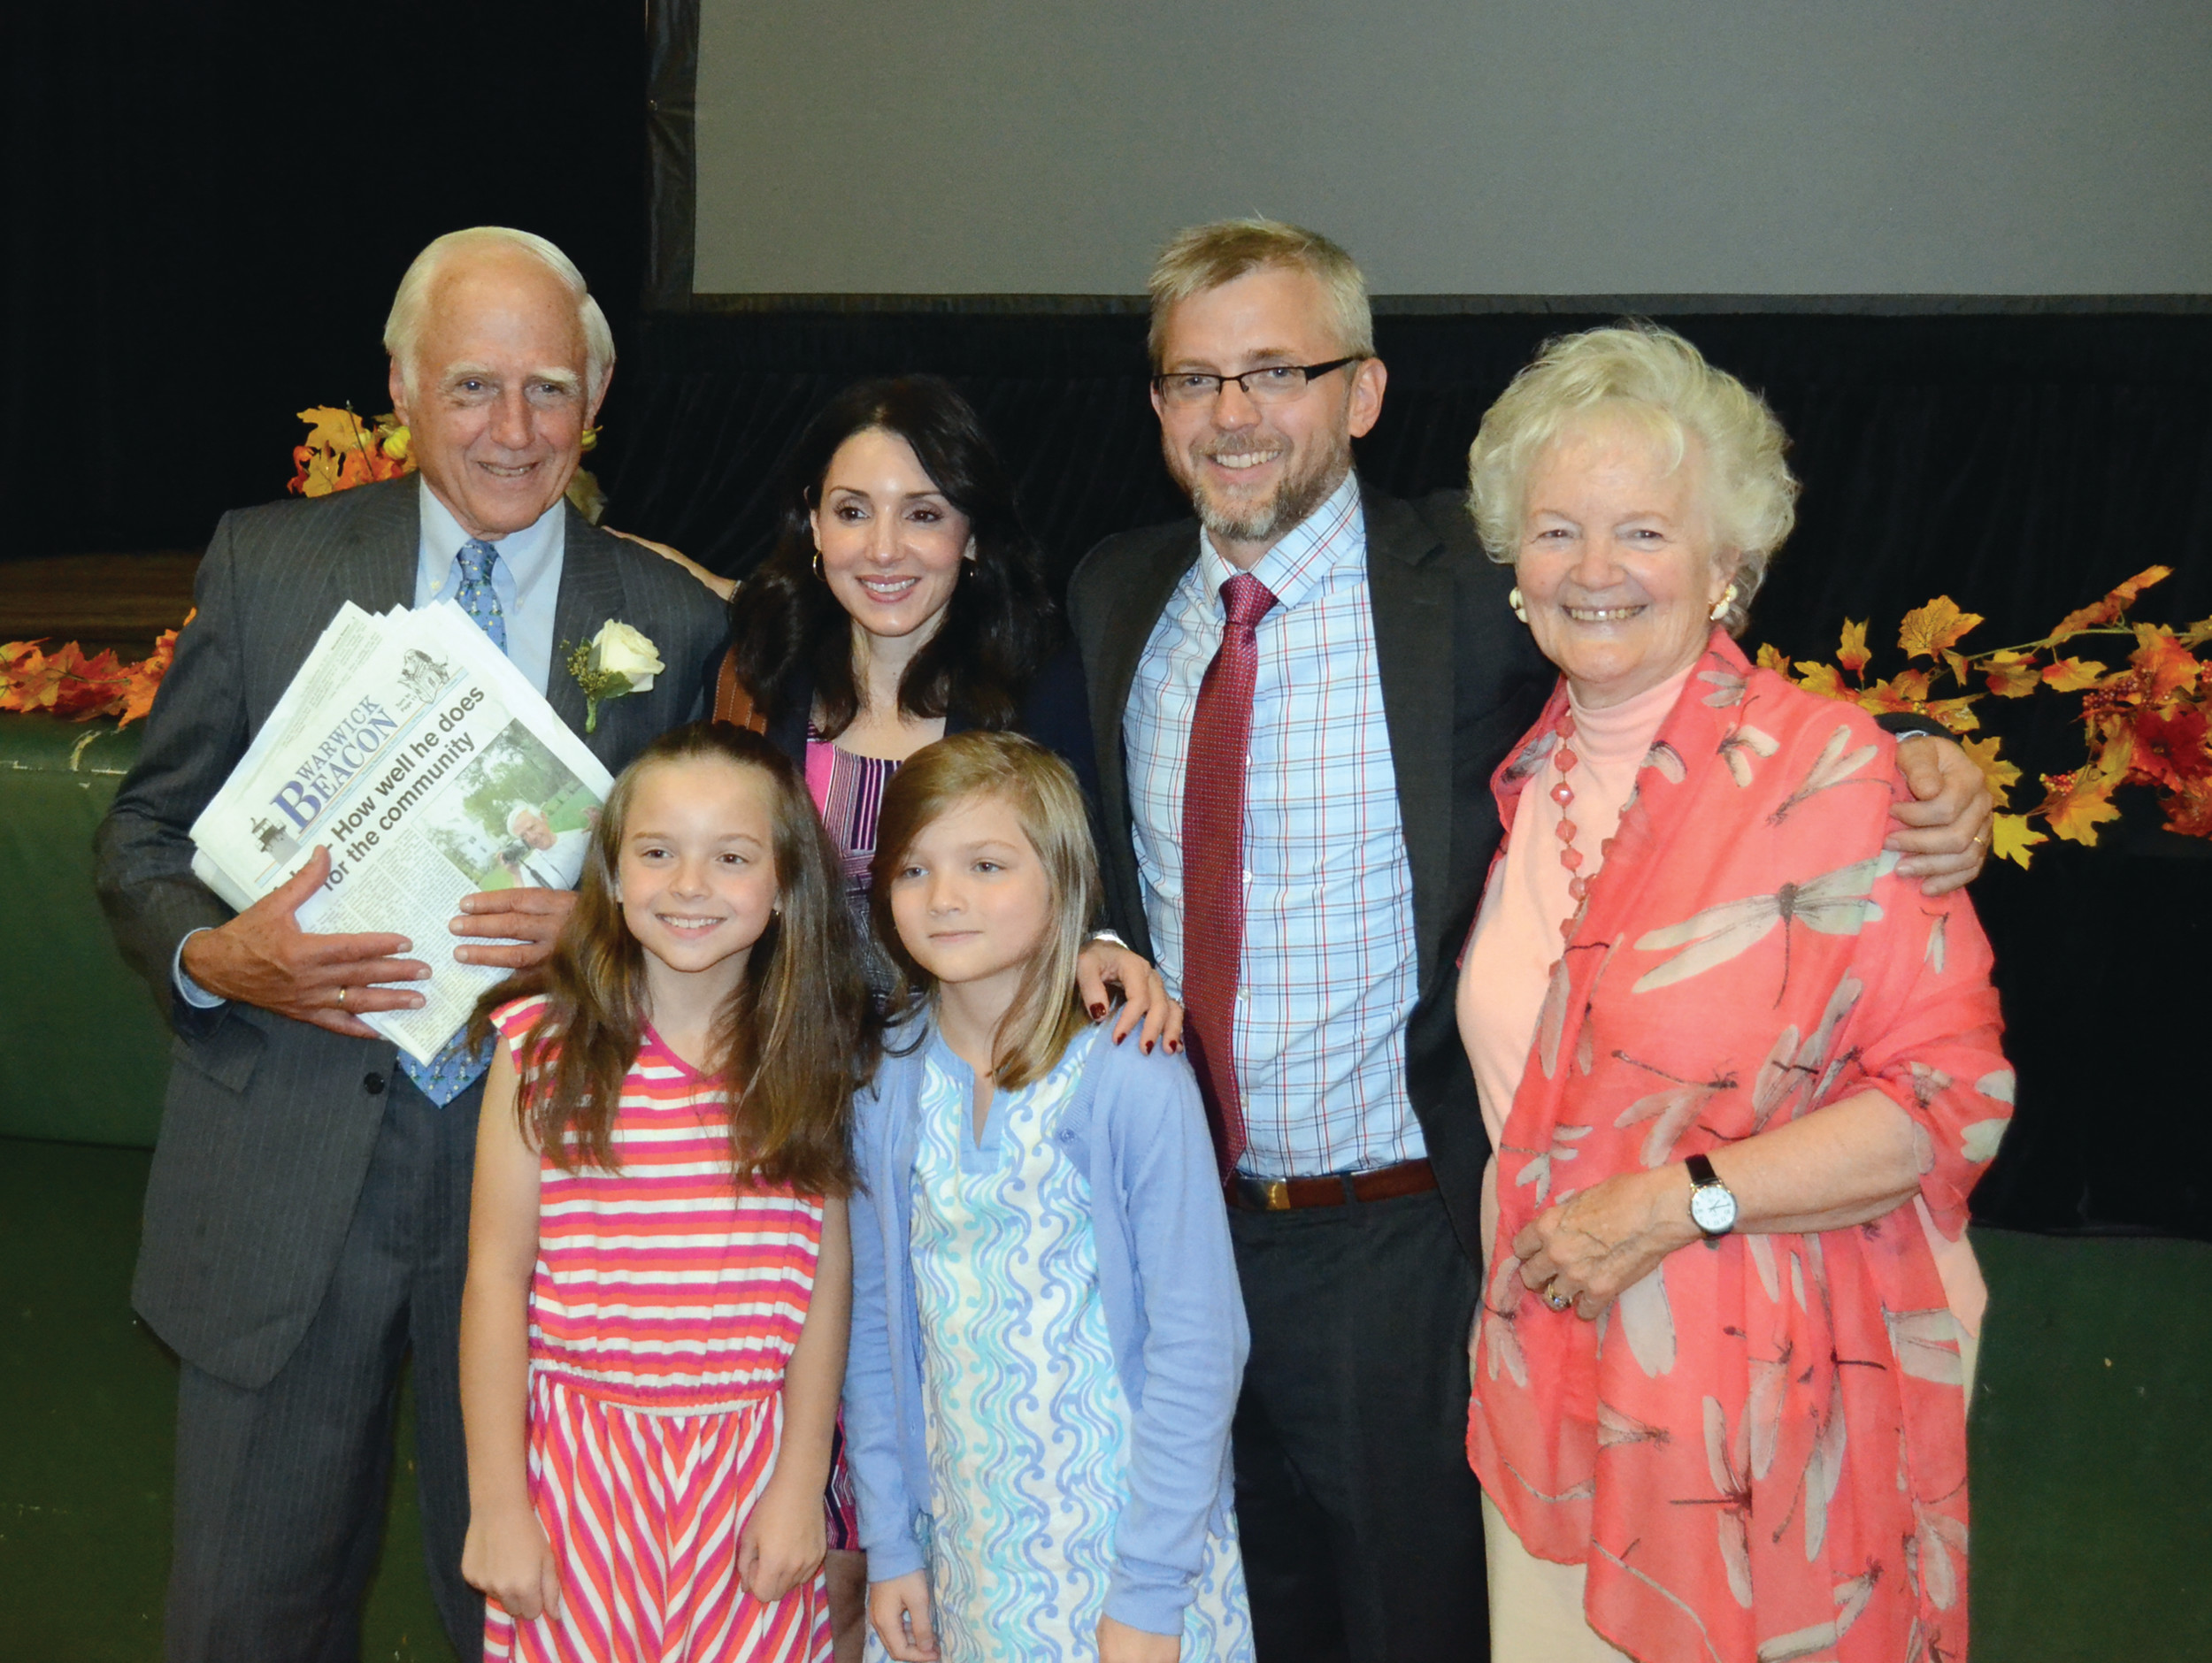 SOURCES OF INSPIRATION: John Howell with his immediate family members that were able to attend the evening, including his wife Carol, son Ted, daughter-in-law Erica and granddaughters Alexandra and Sydney.